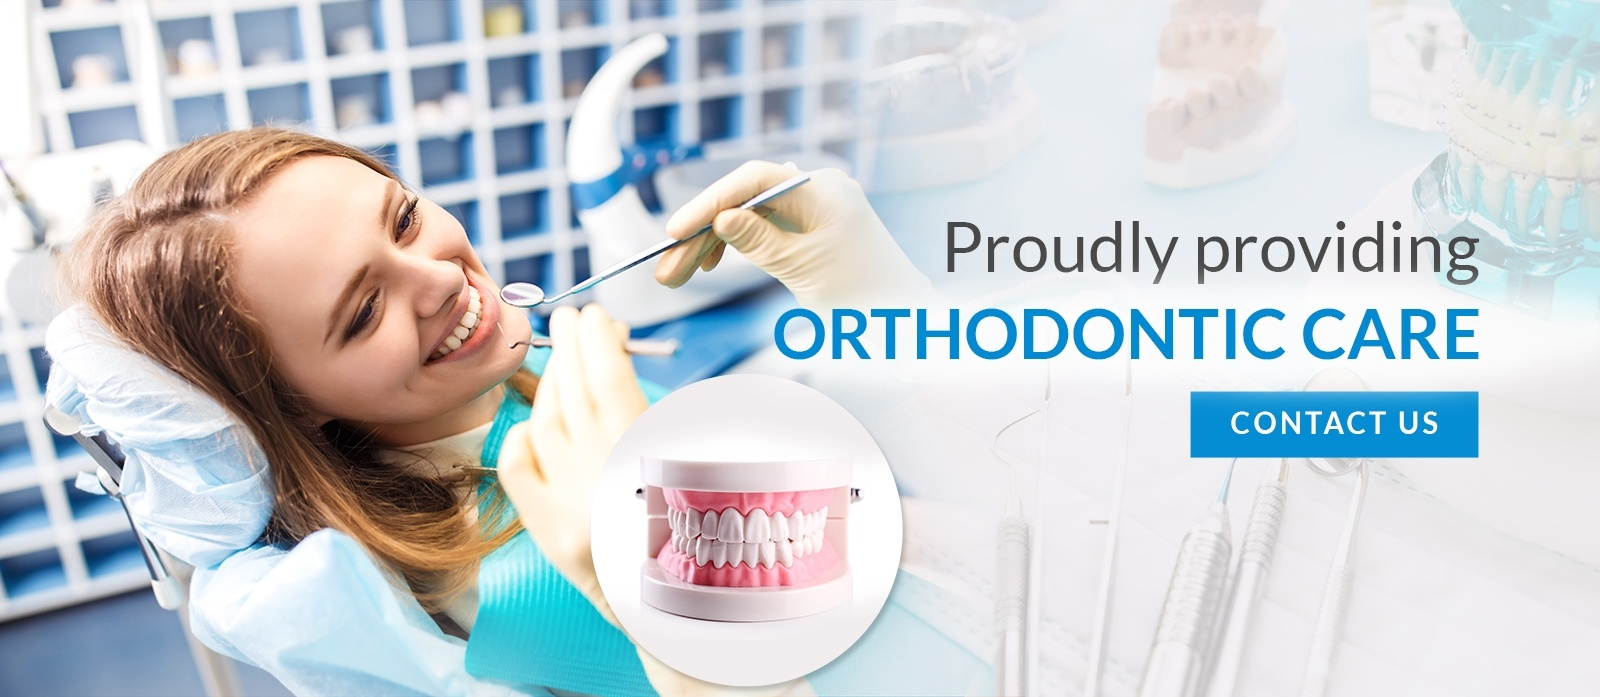 Pitt Meadows Orthodontics